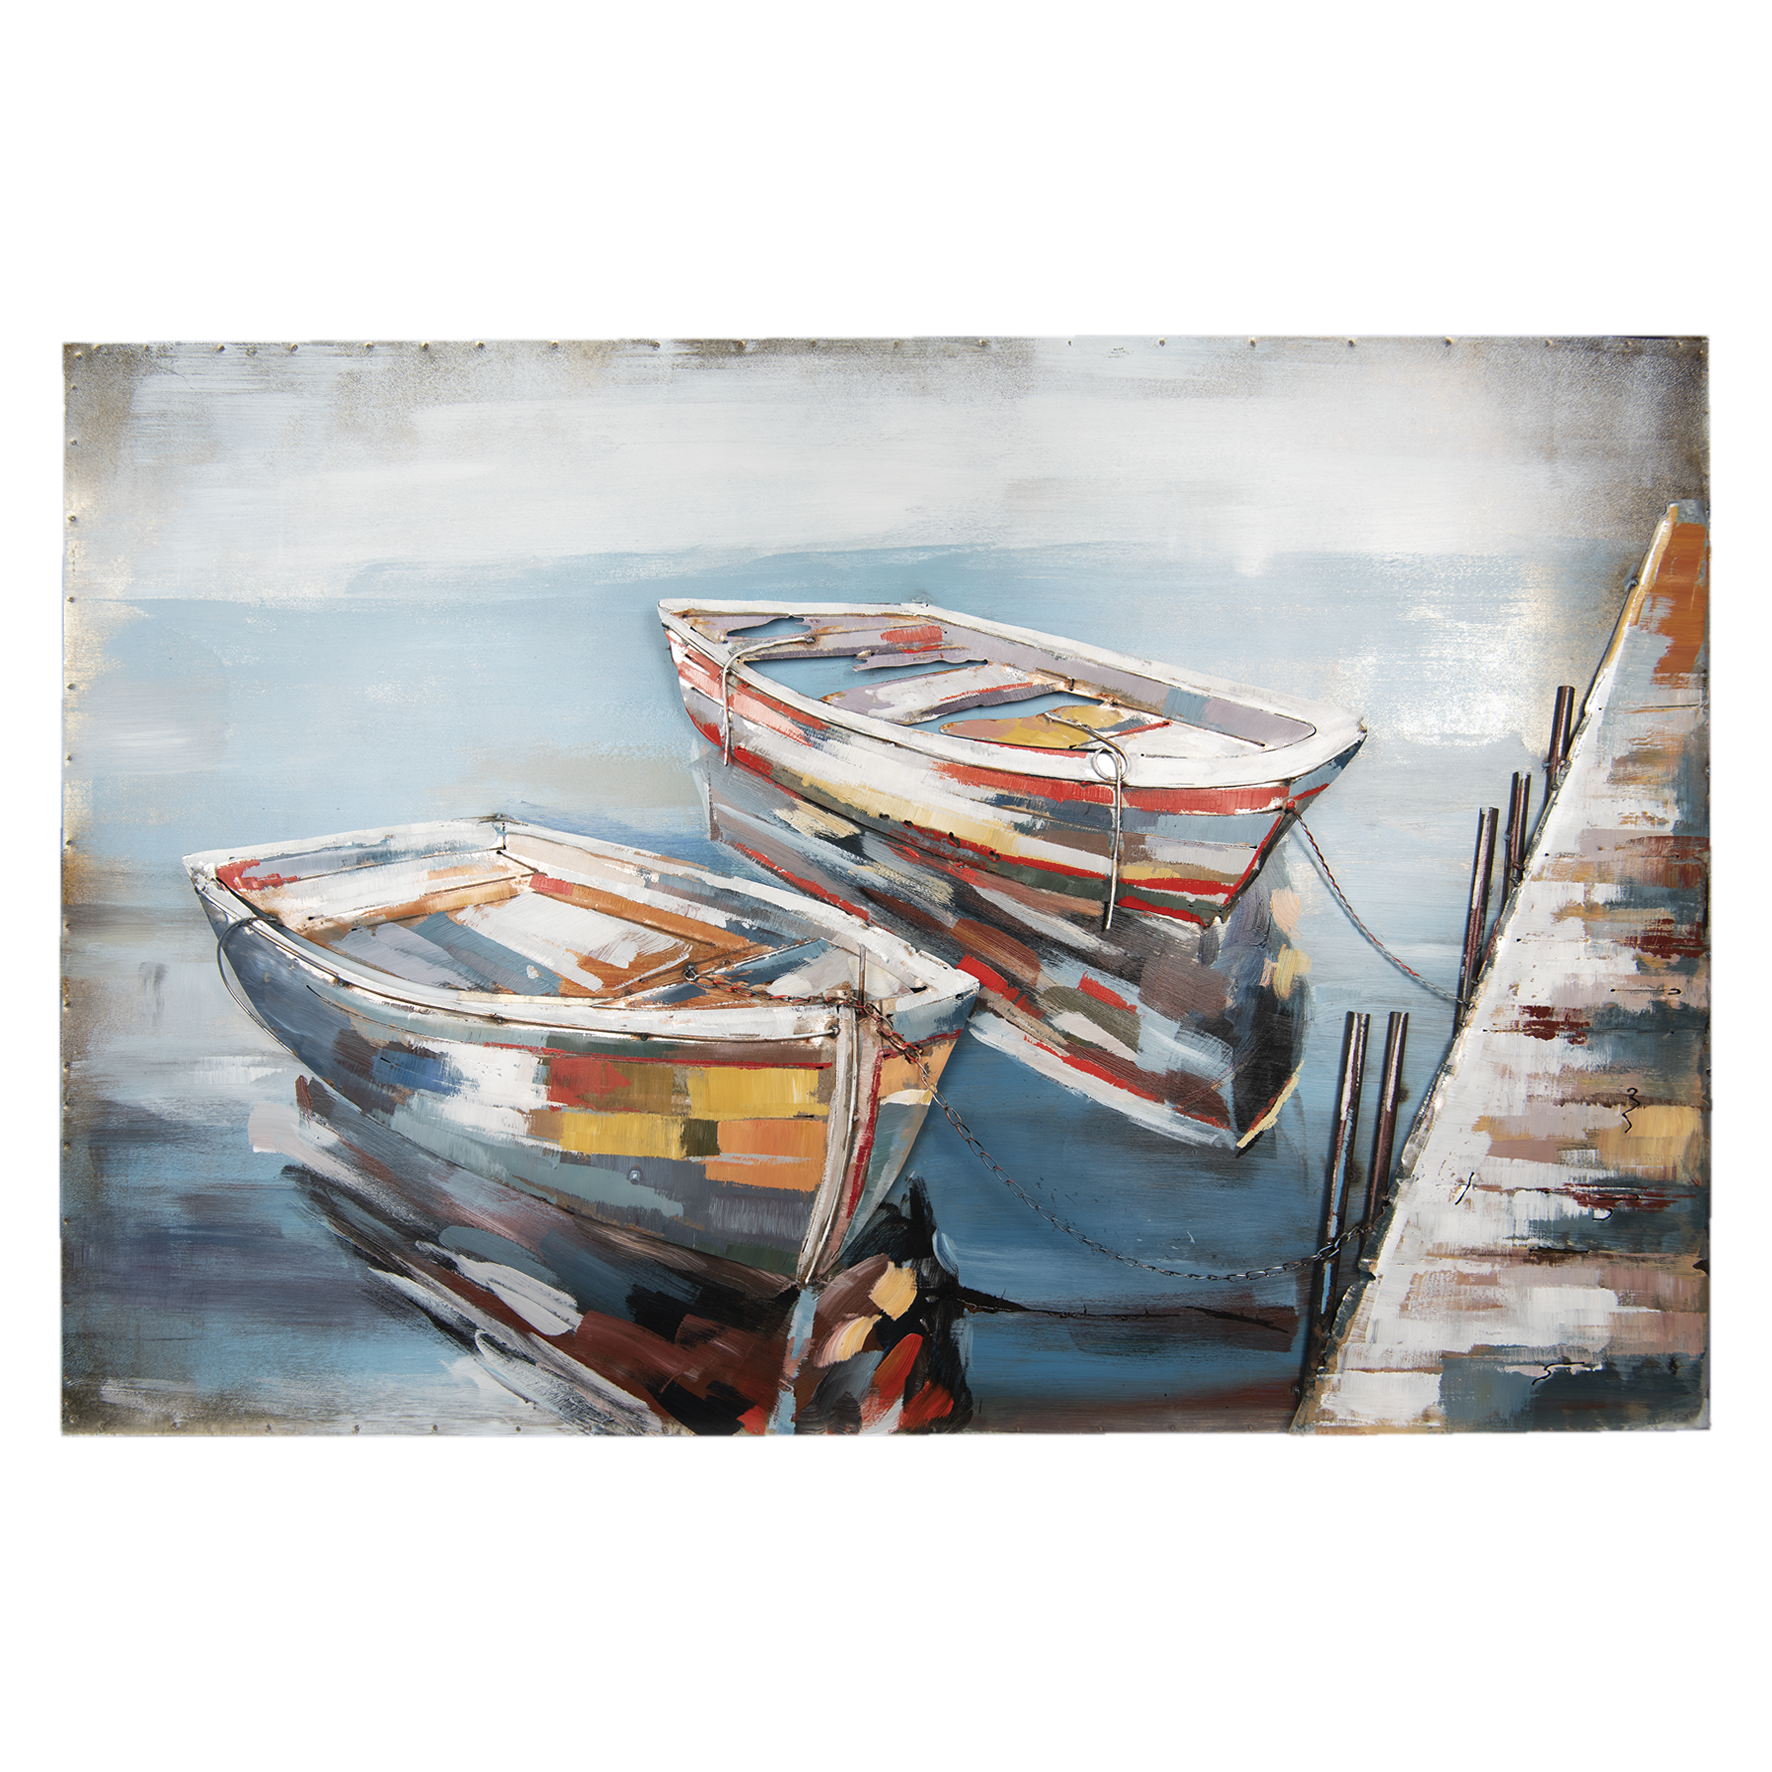 Gave 3D-Malerei 120x80cm Boote